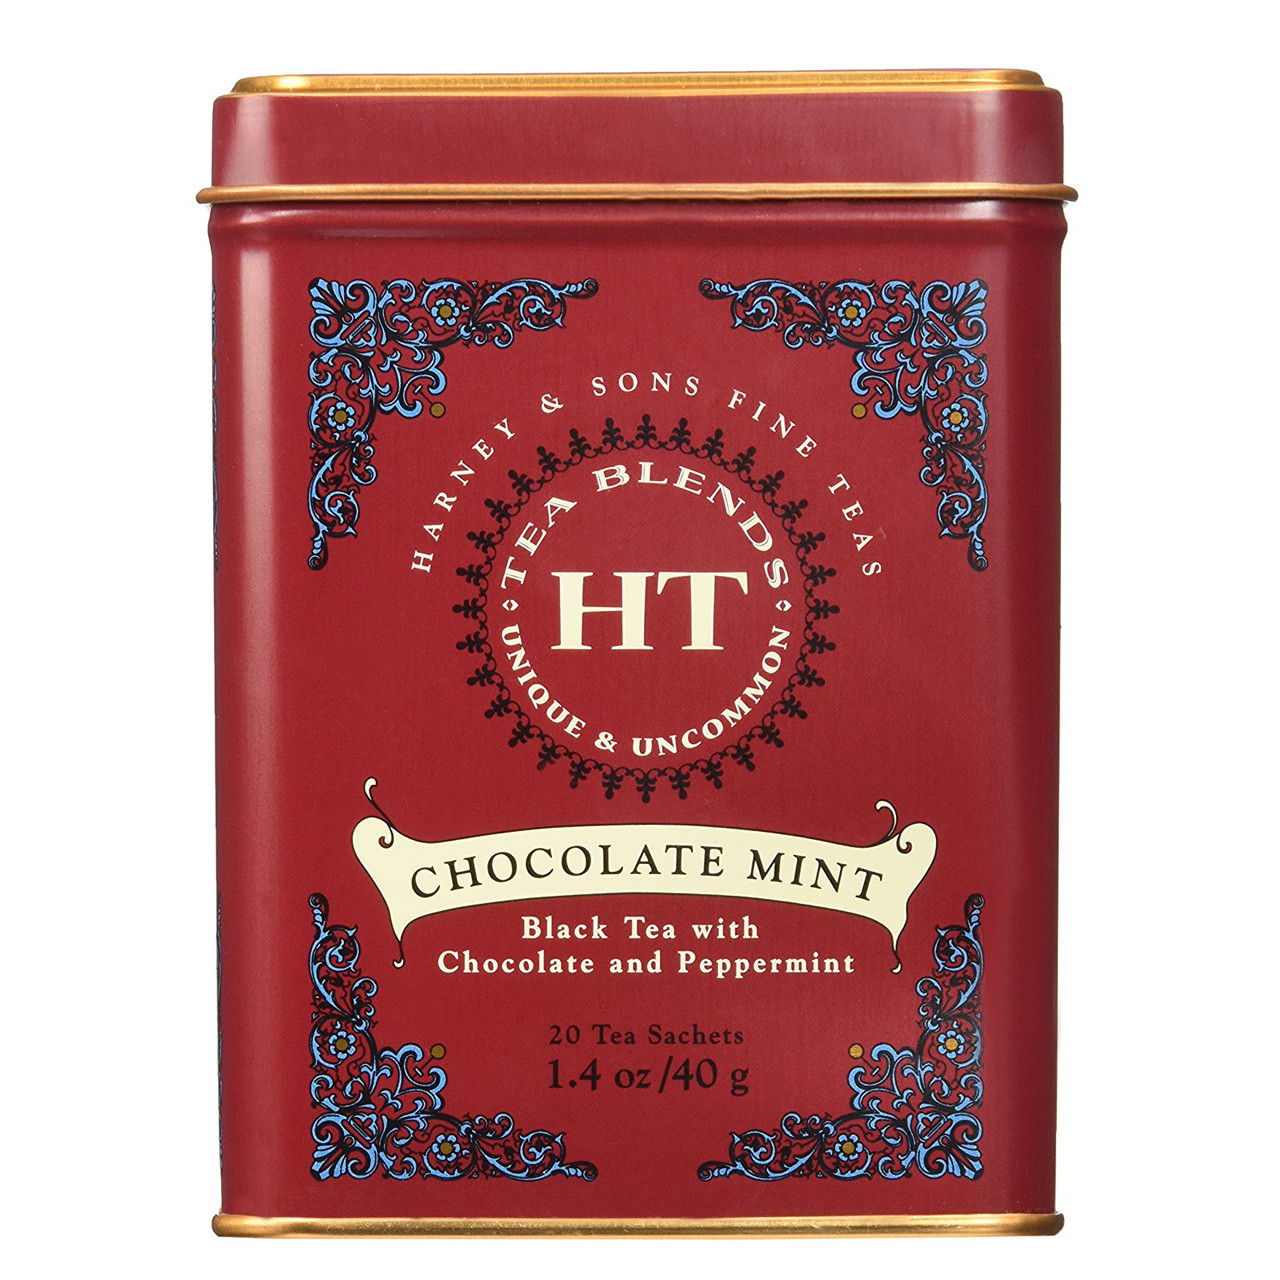 Harney & Sons Chocolate Mint